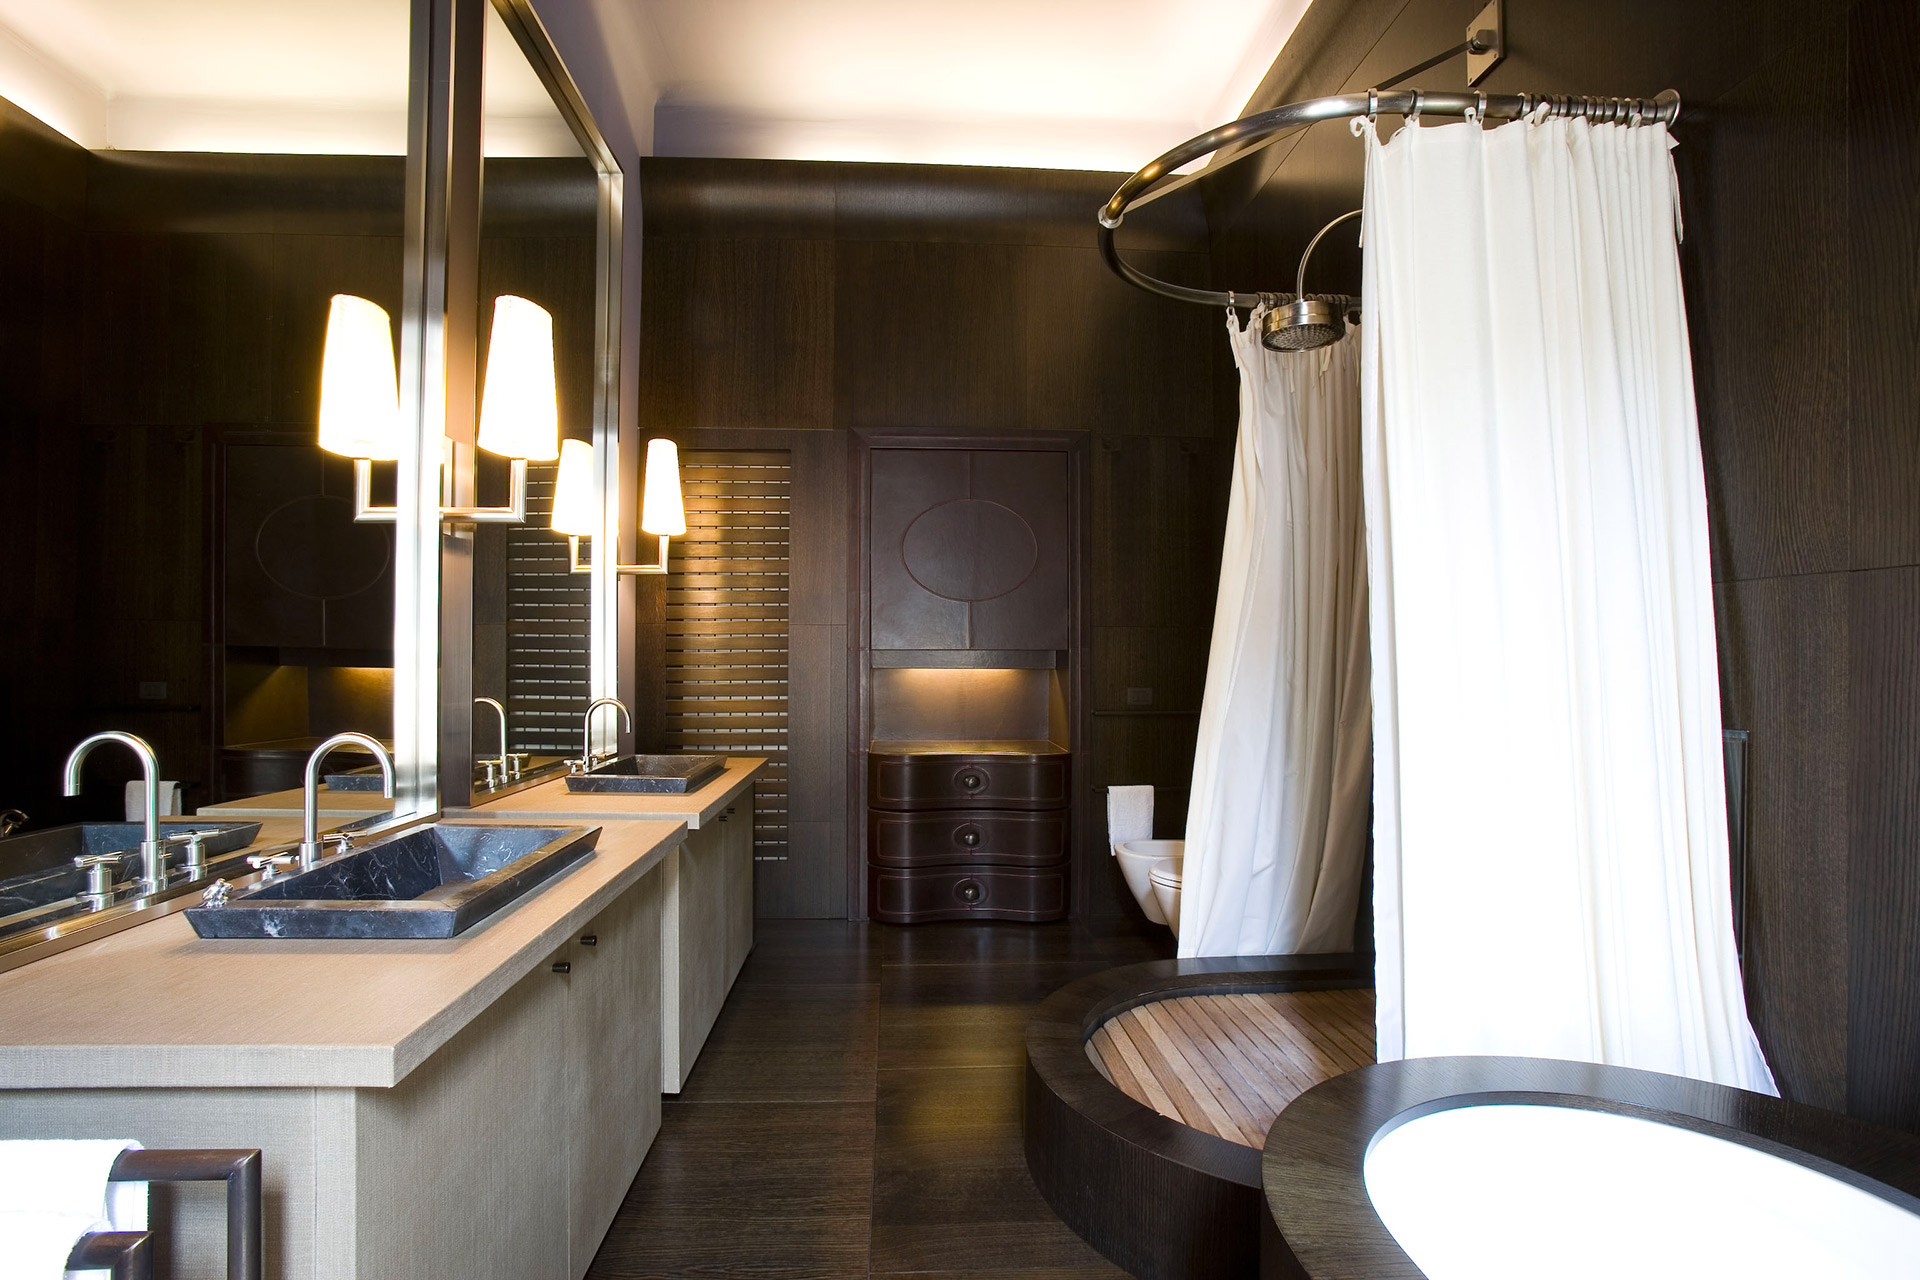 Bathroom of a private residence in Milan furnished with Promemoria | Promemoria